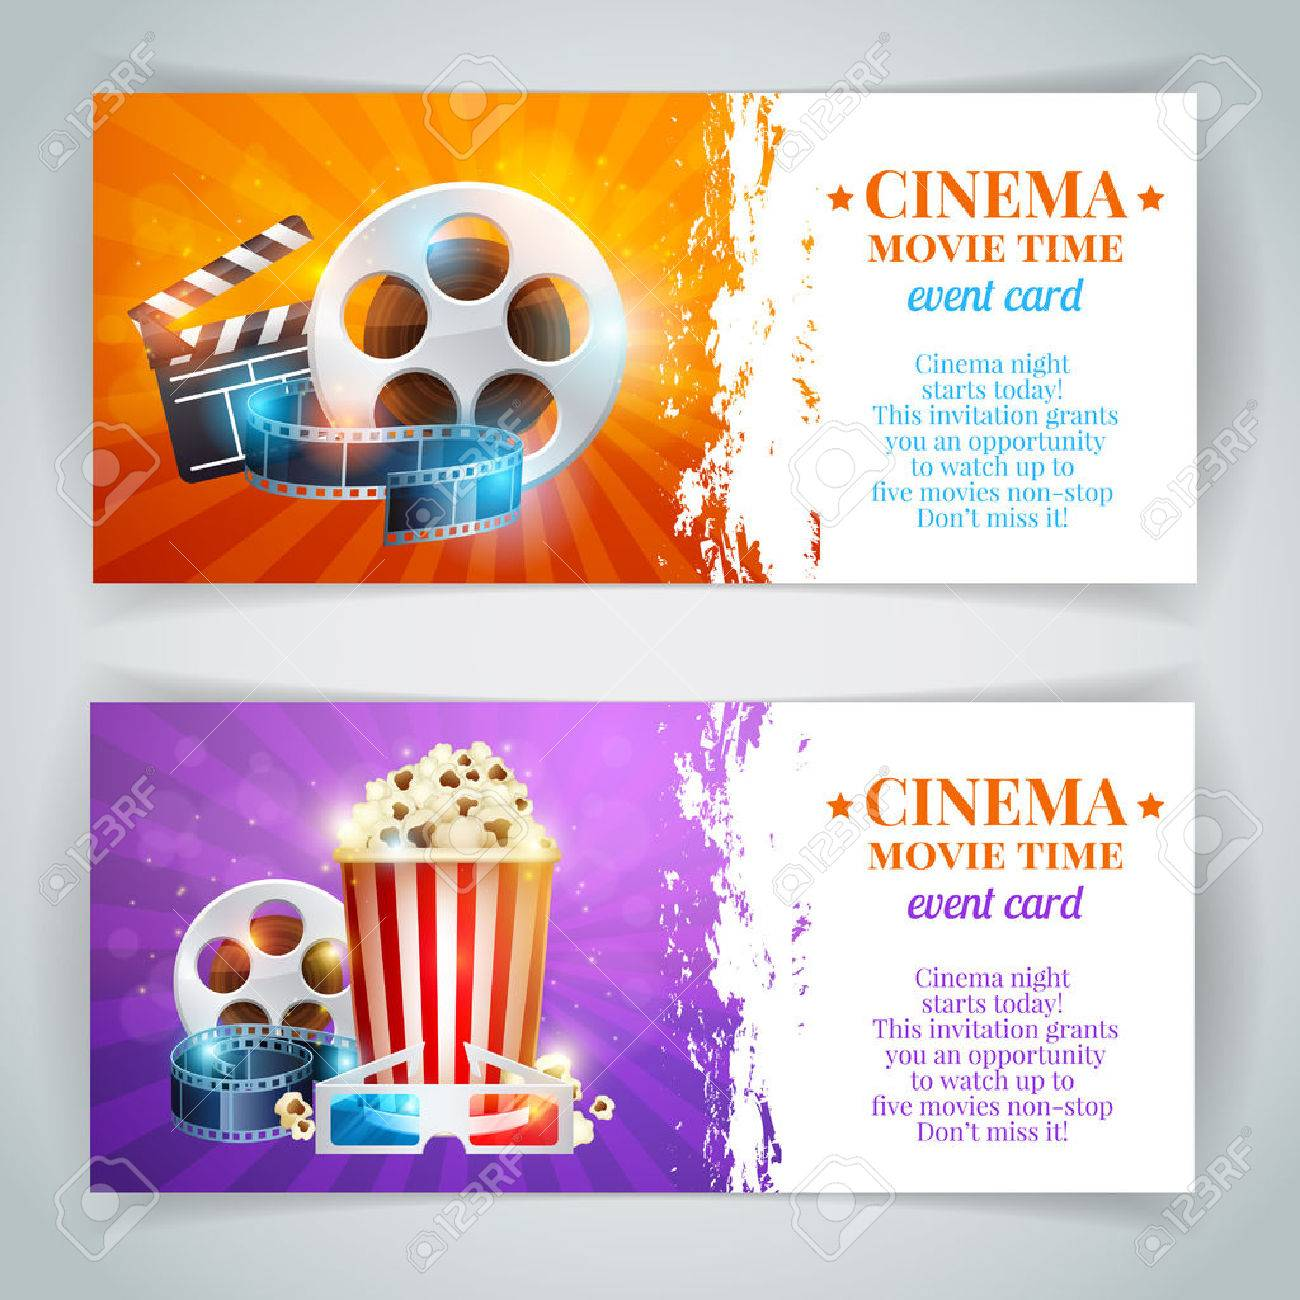 Realistic cinema movie poster template with film reel, clapper, popcorn, 3D glasses, conceptbanners with bokeh - 39556714